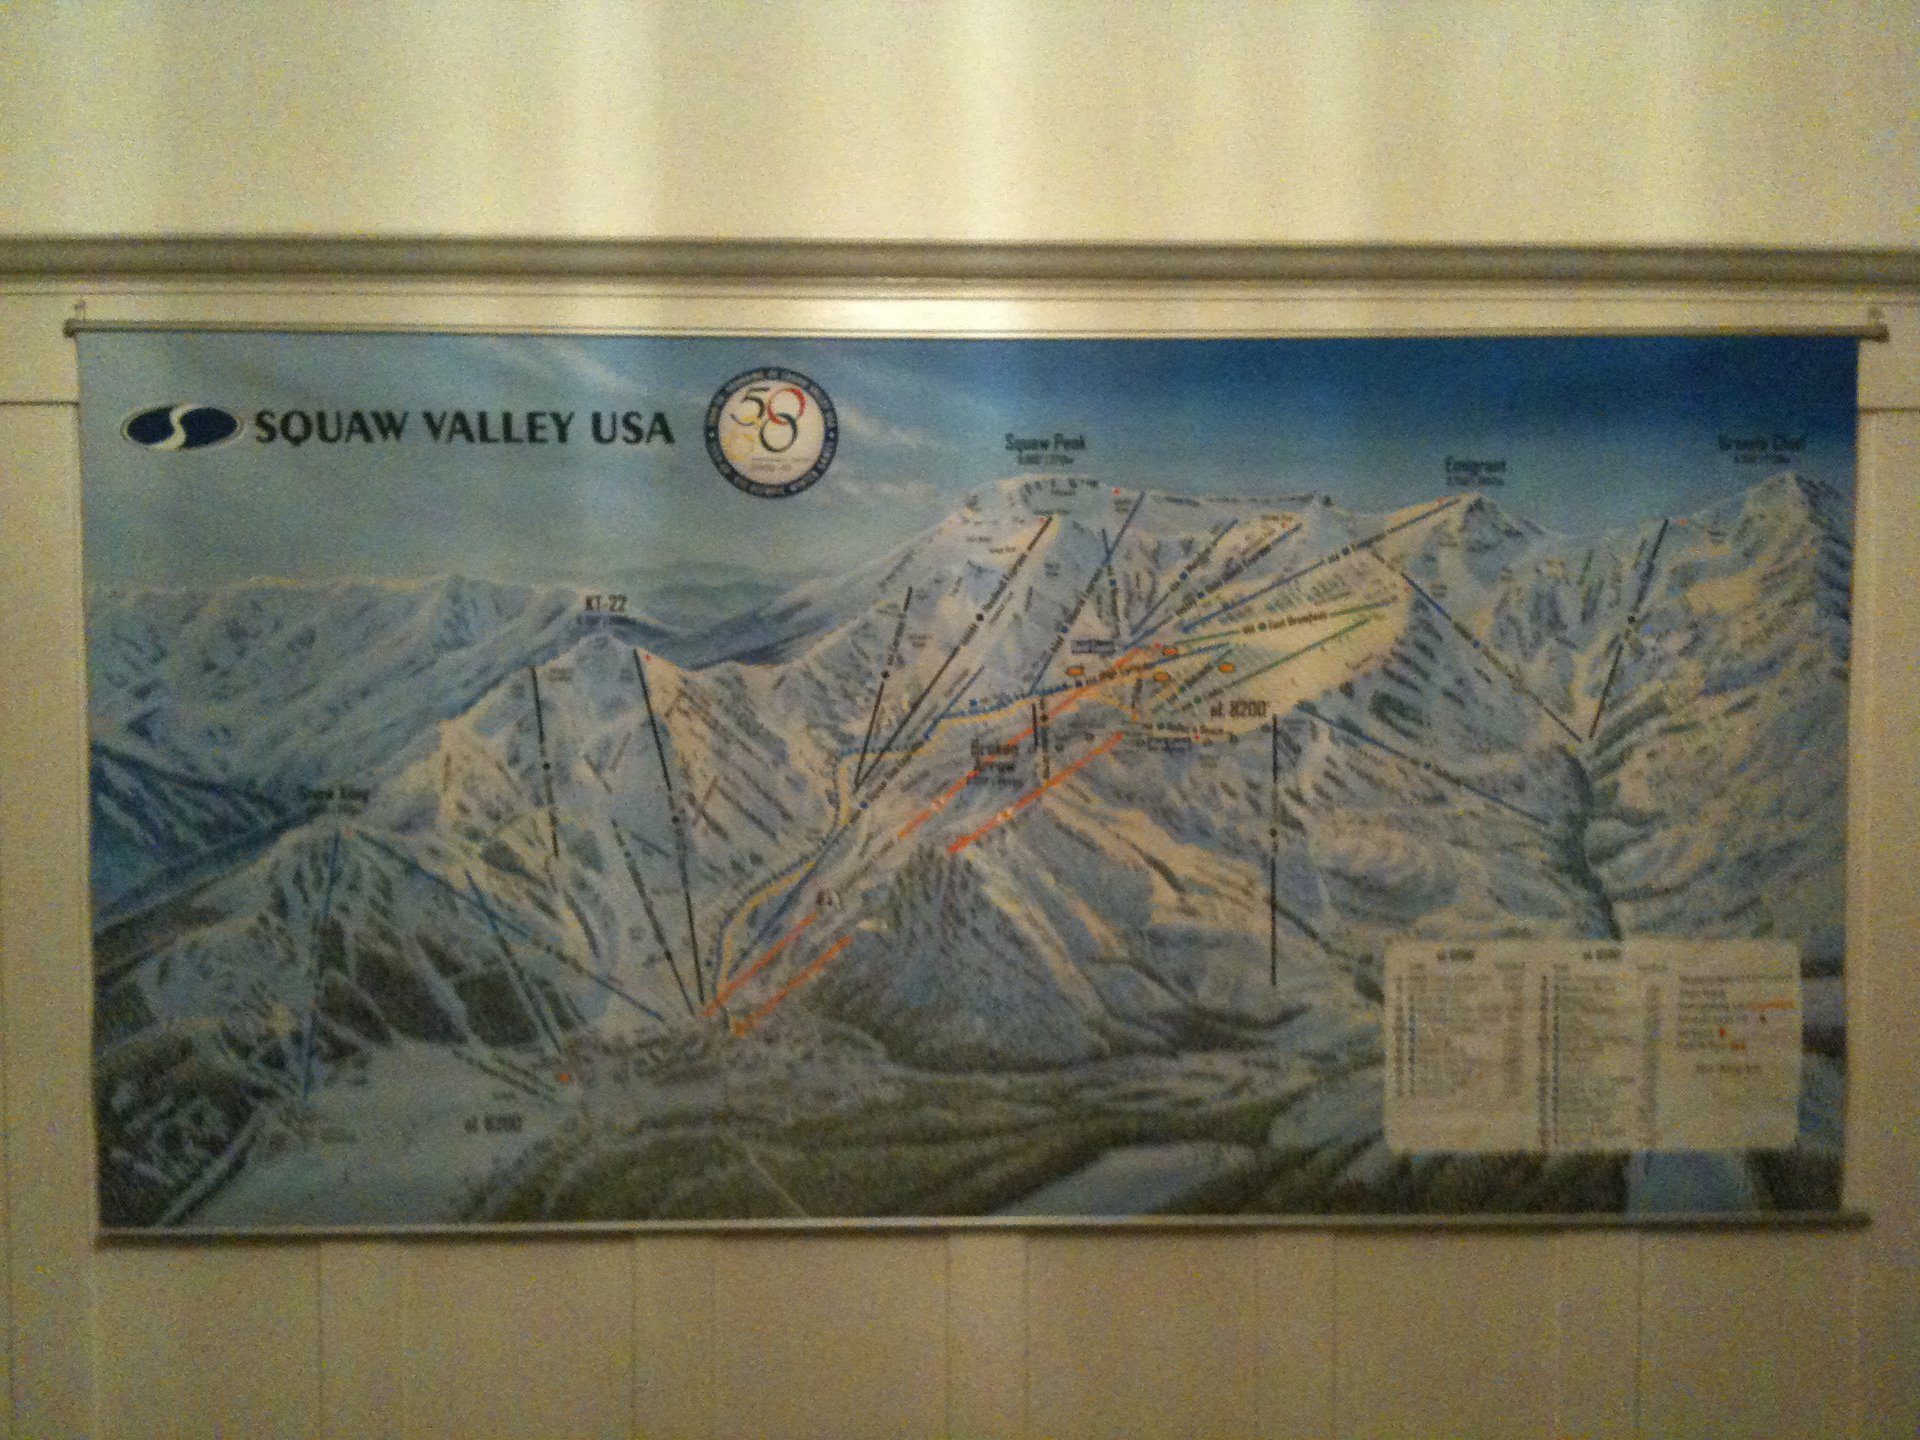 7' x 4' Squaw Valley Trail Map